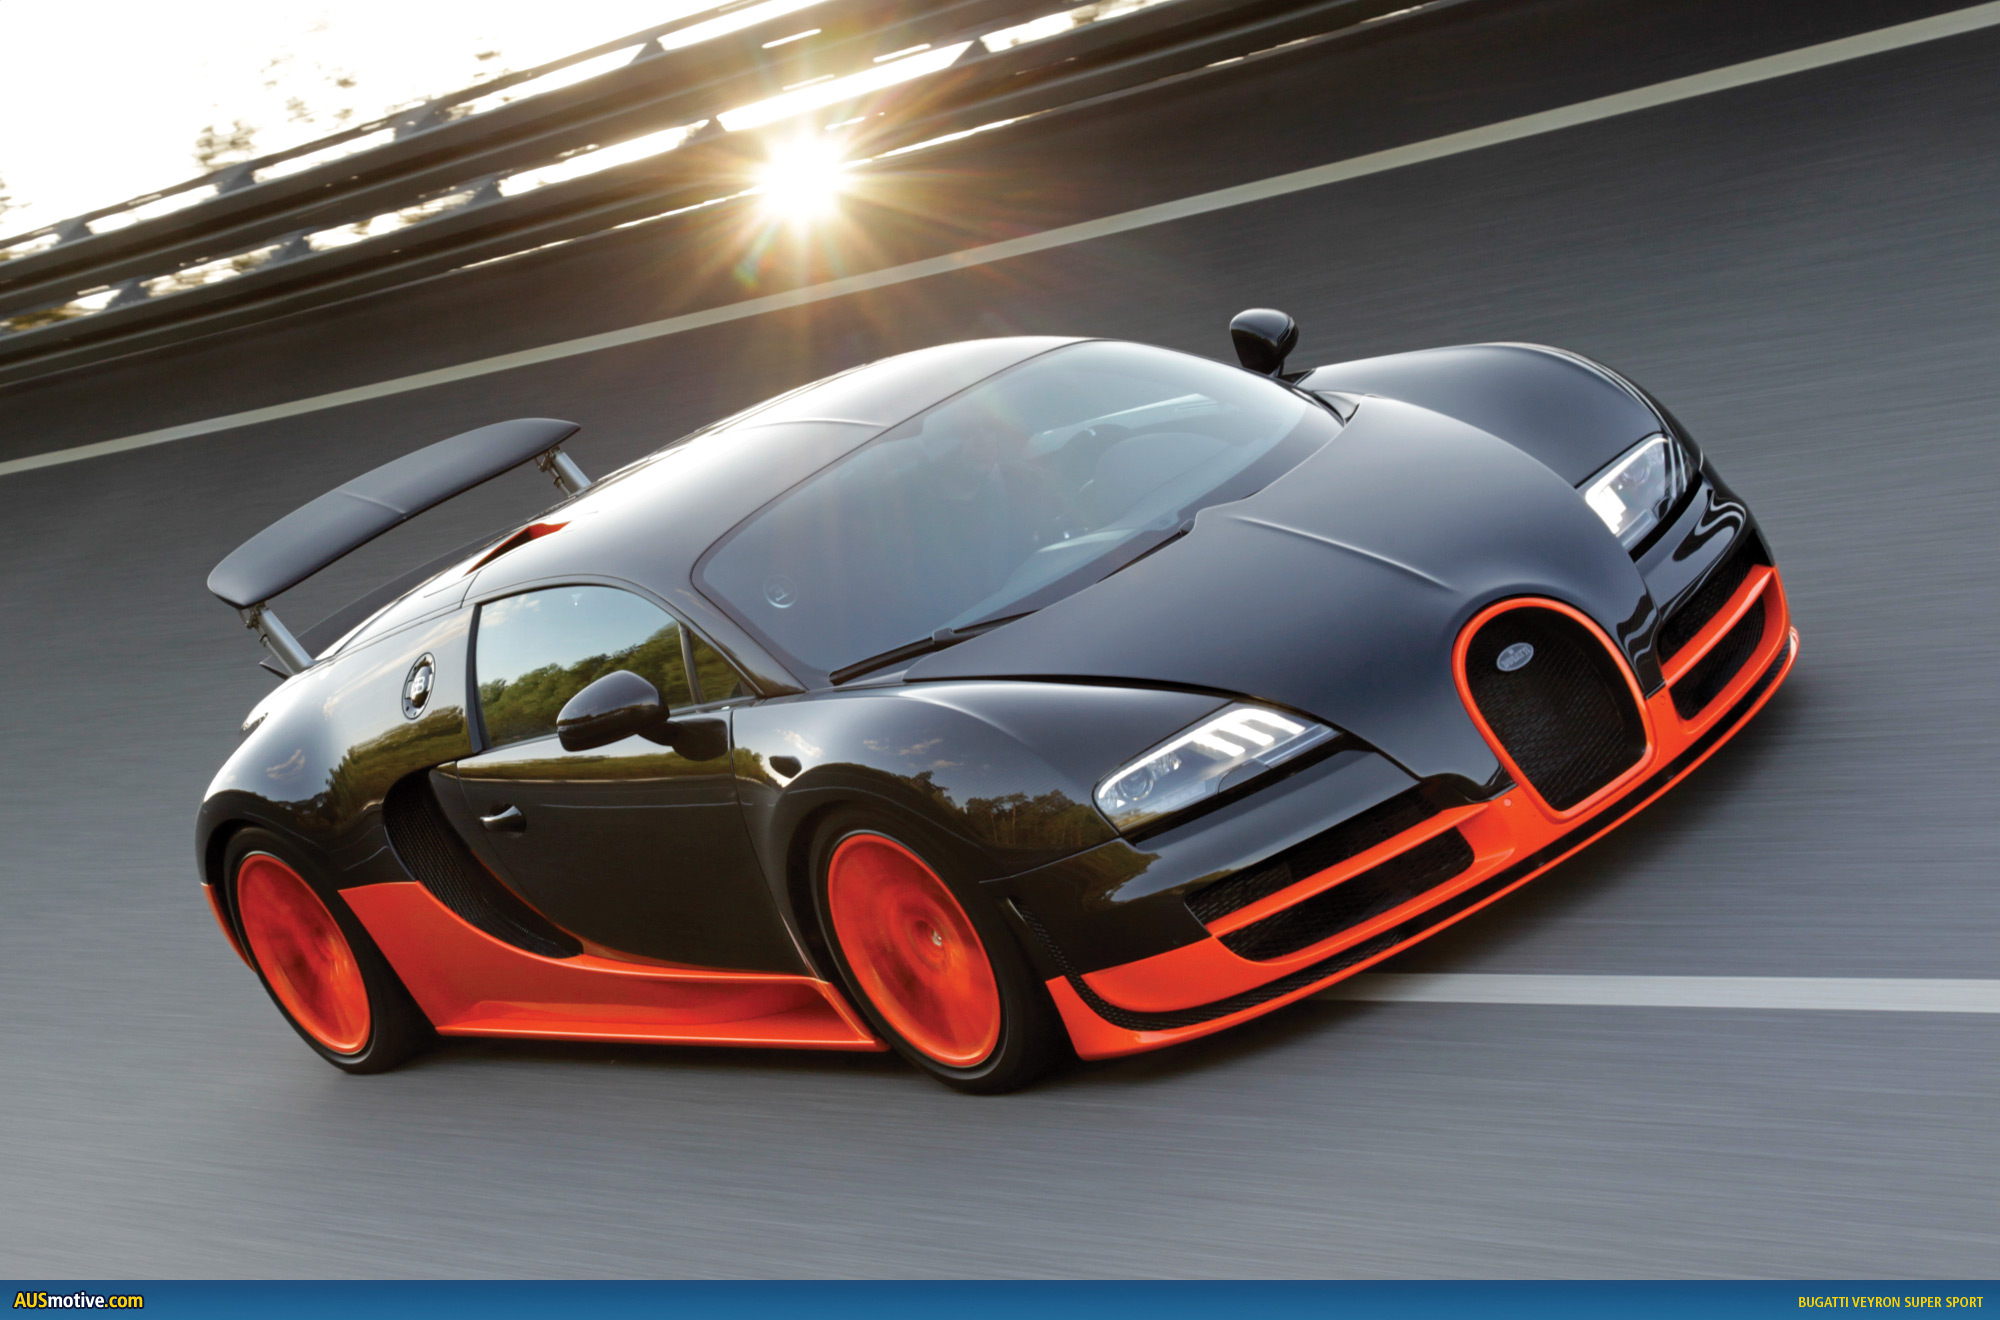 On 26 June 2010 this lairy orange and black Bugatti Veyron Super Sport